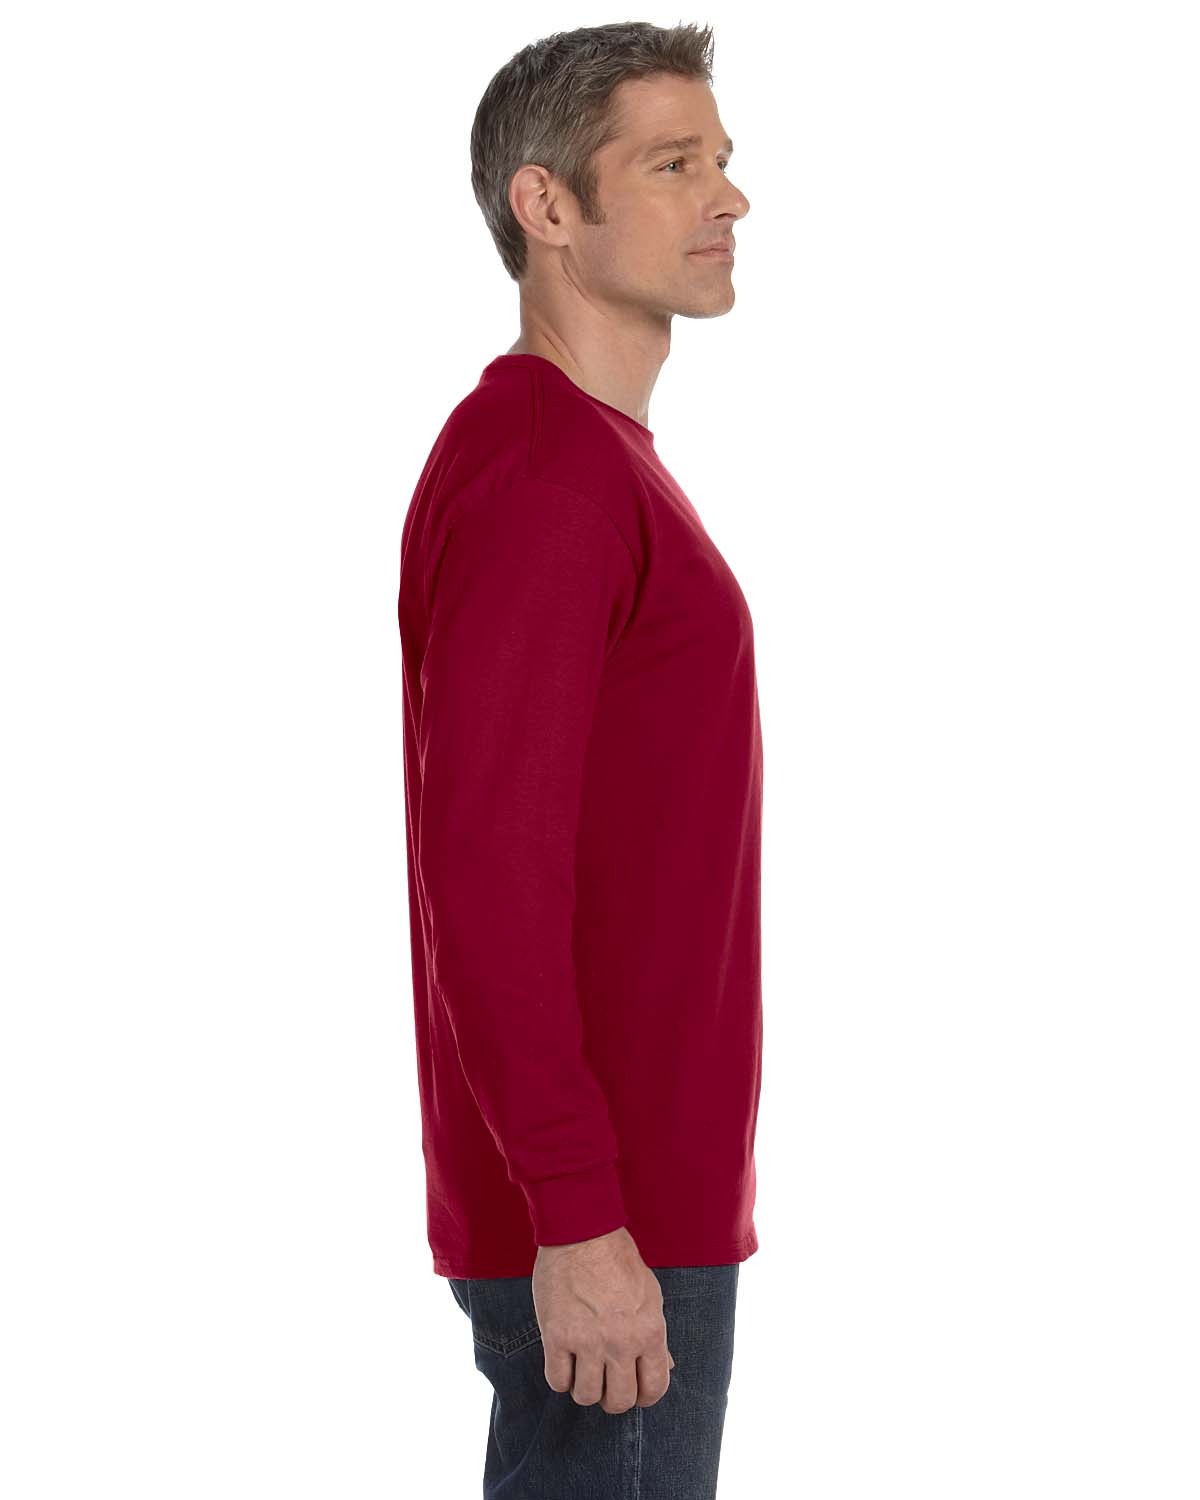 Gildan-Mens-T-Shirt-Long-Sleeve-Heavy-Cotton-5-3-oz-S-XL-R-G540-5400 thumbnail 12